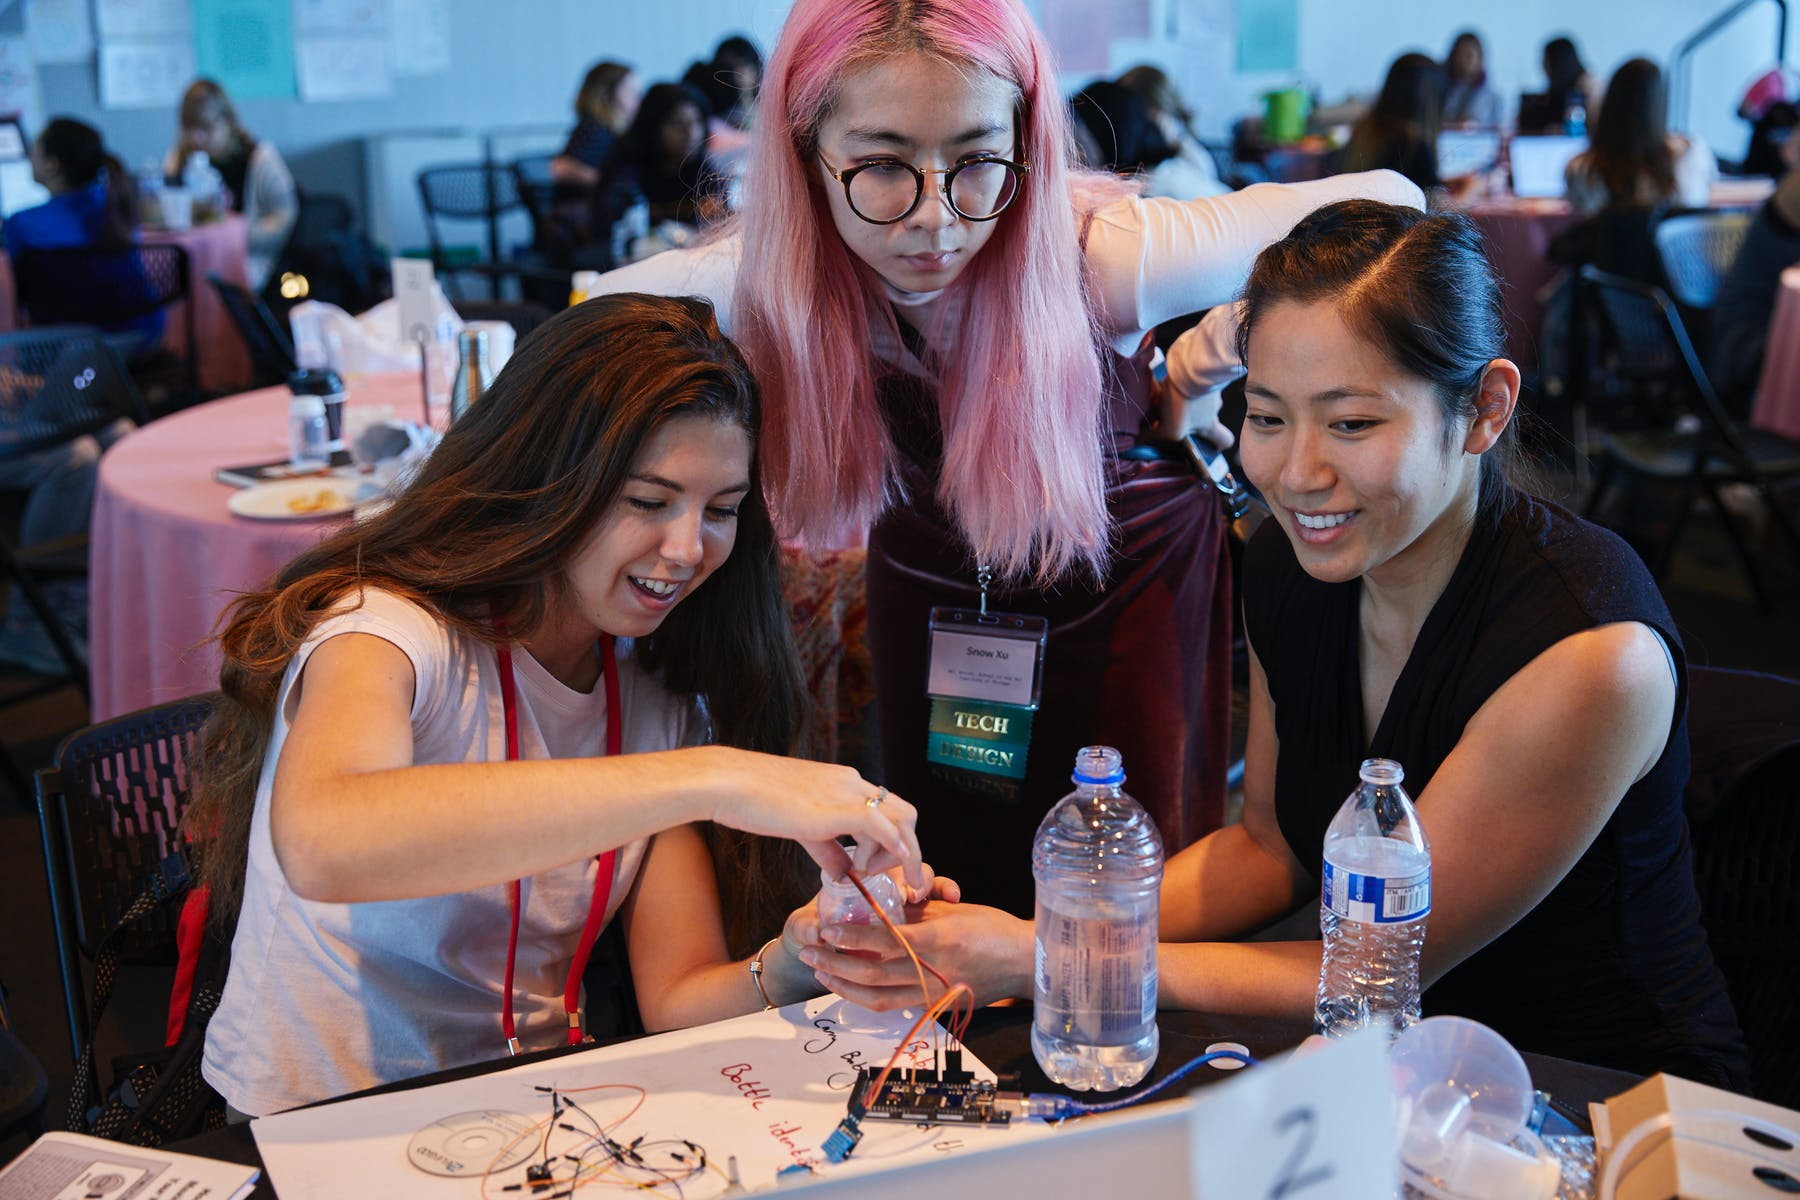 Three young women sitting at a table together working on what appears to be a circuit board.